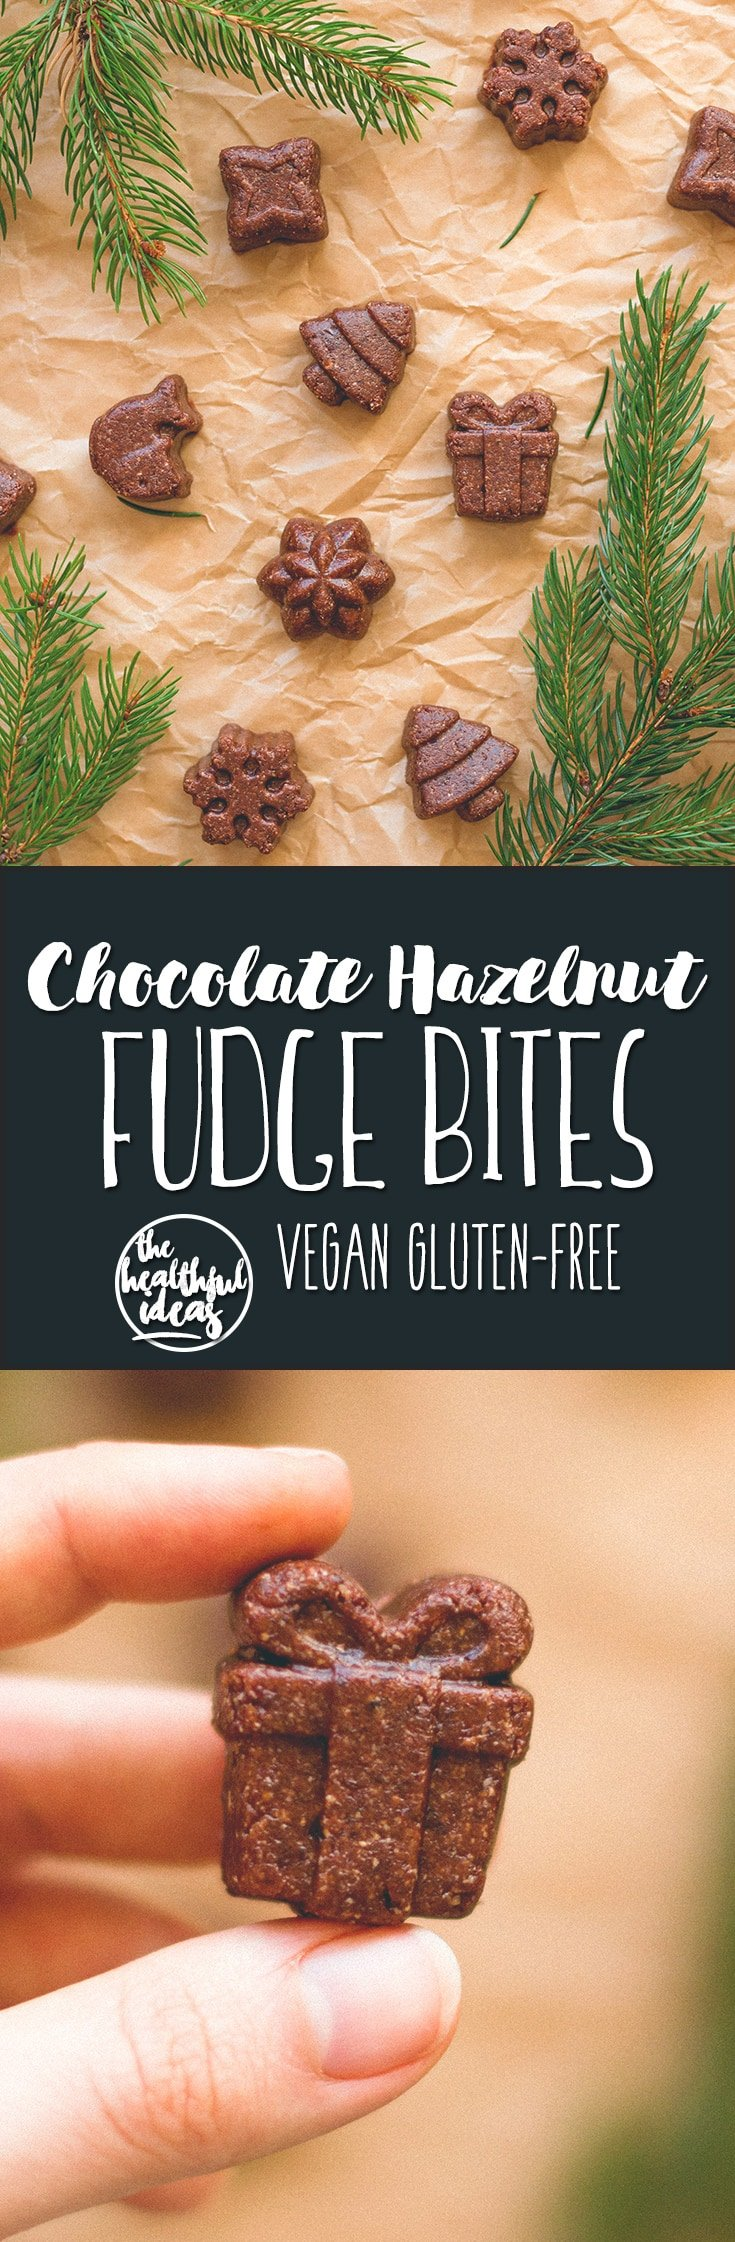 Chocolate Hazelnut Fudge Bites - delicious vegan & GF festive treats (great for any time of the year, really). No added sugar, sweetened with dates! You'll love these! Such an easy recipe. | thehealthfulideas.com